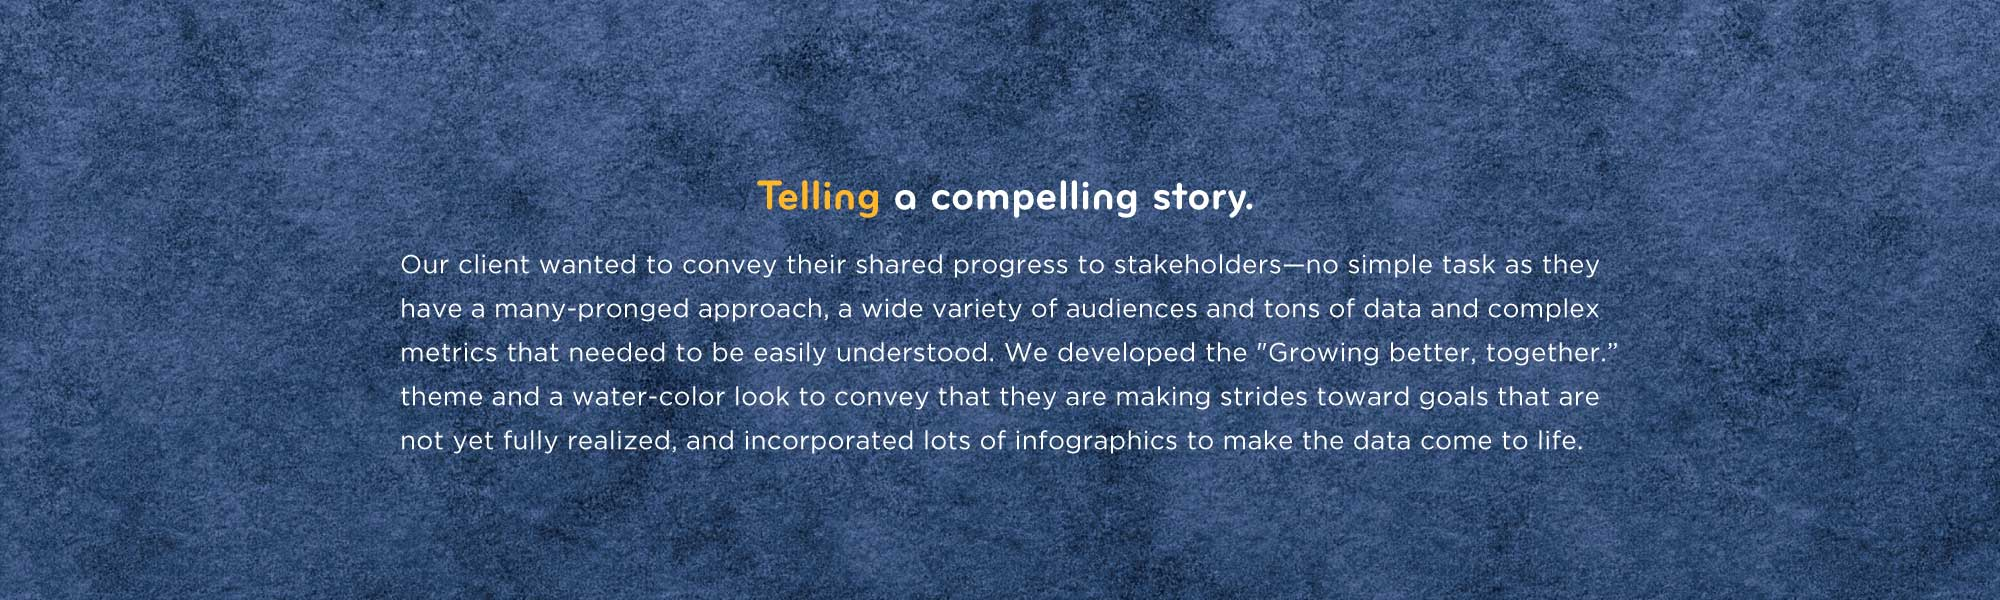 Telling a compelling story.